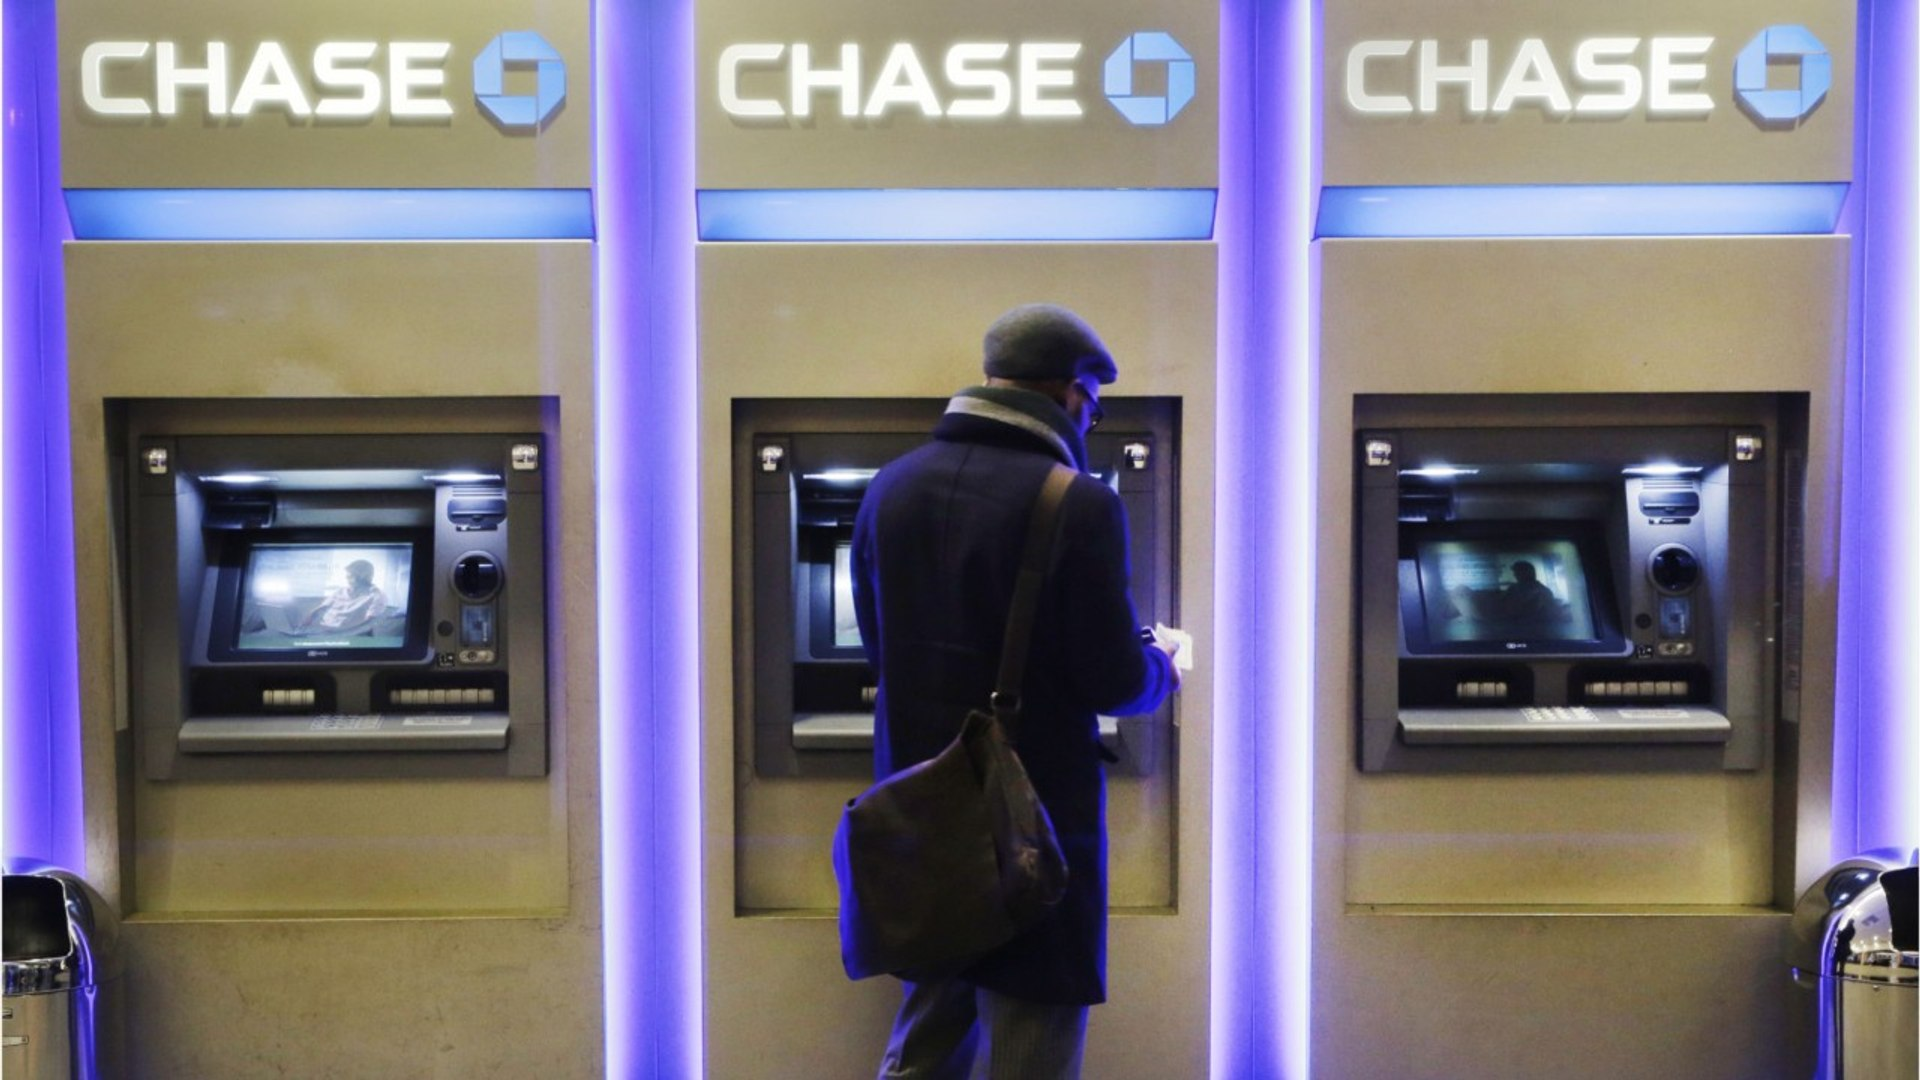 JPMorgan Chase Targets The Young And The Isolated With 100% Online Bank